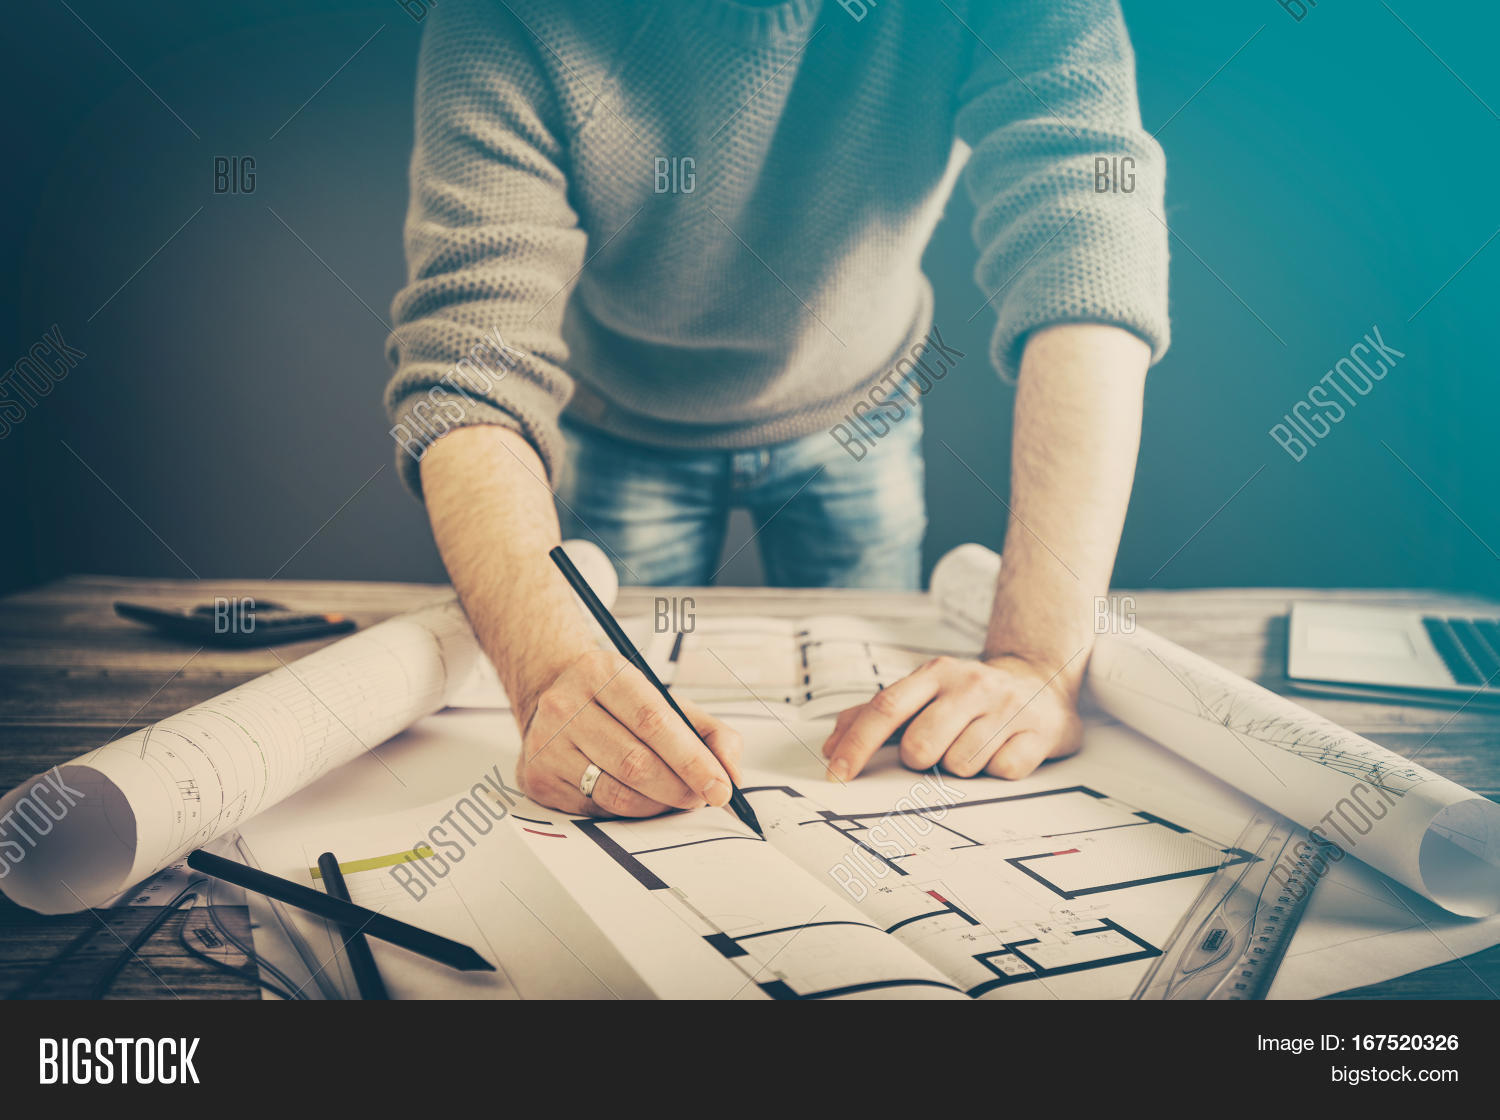 Architect architecture image photo free trial bigstock architect architecture drawing project blueprint office business working architectural construction design designer ruler table workplace concept malvernweather Choice Image